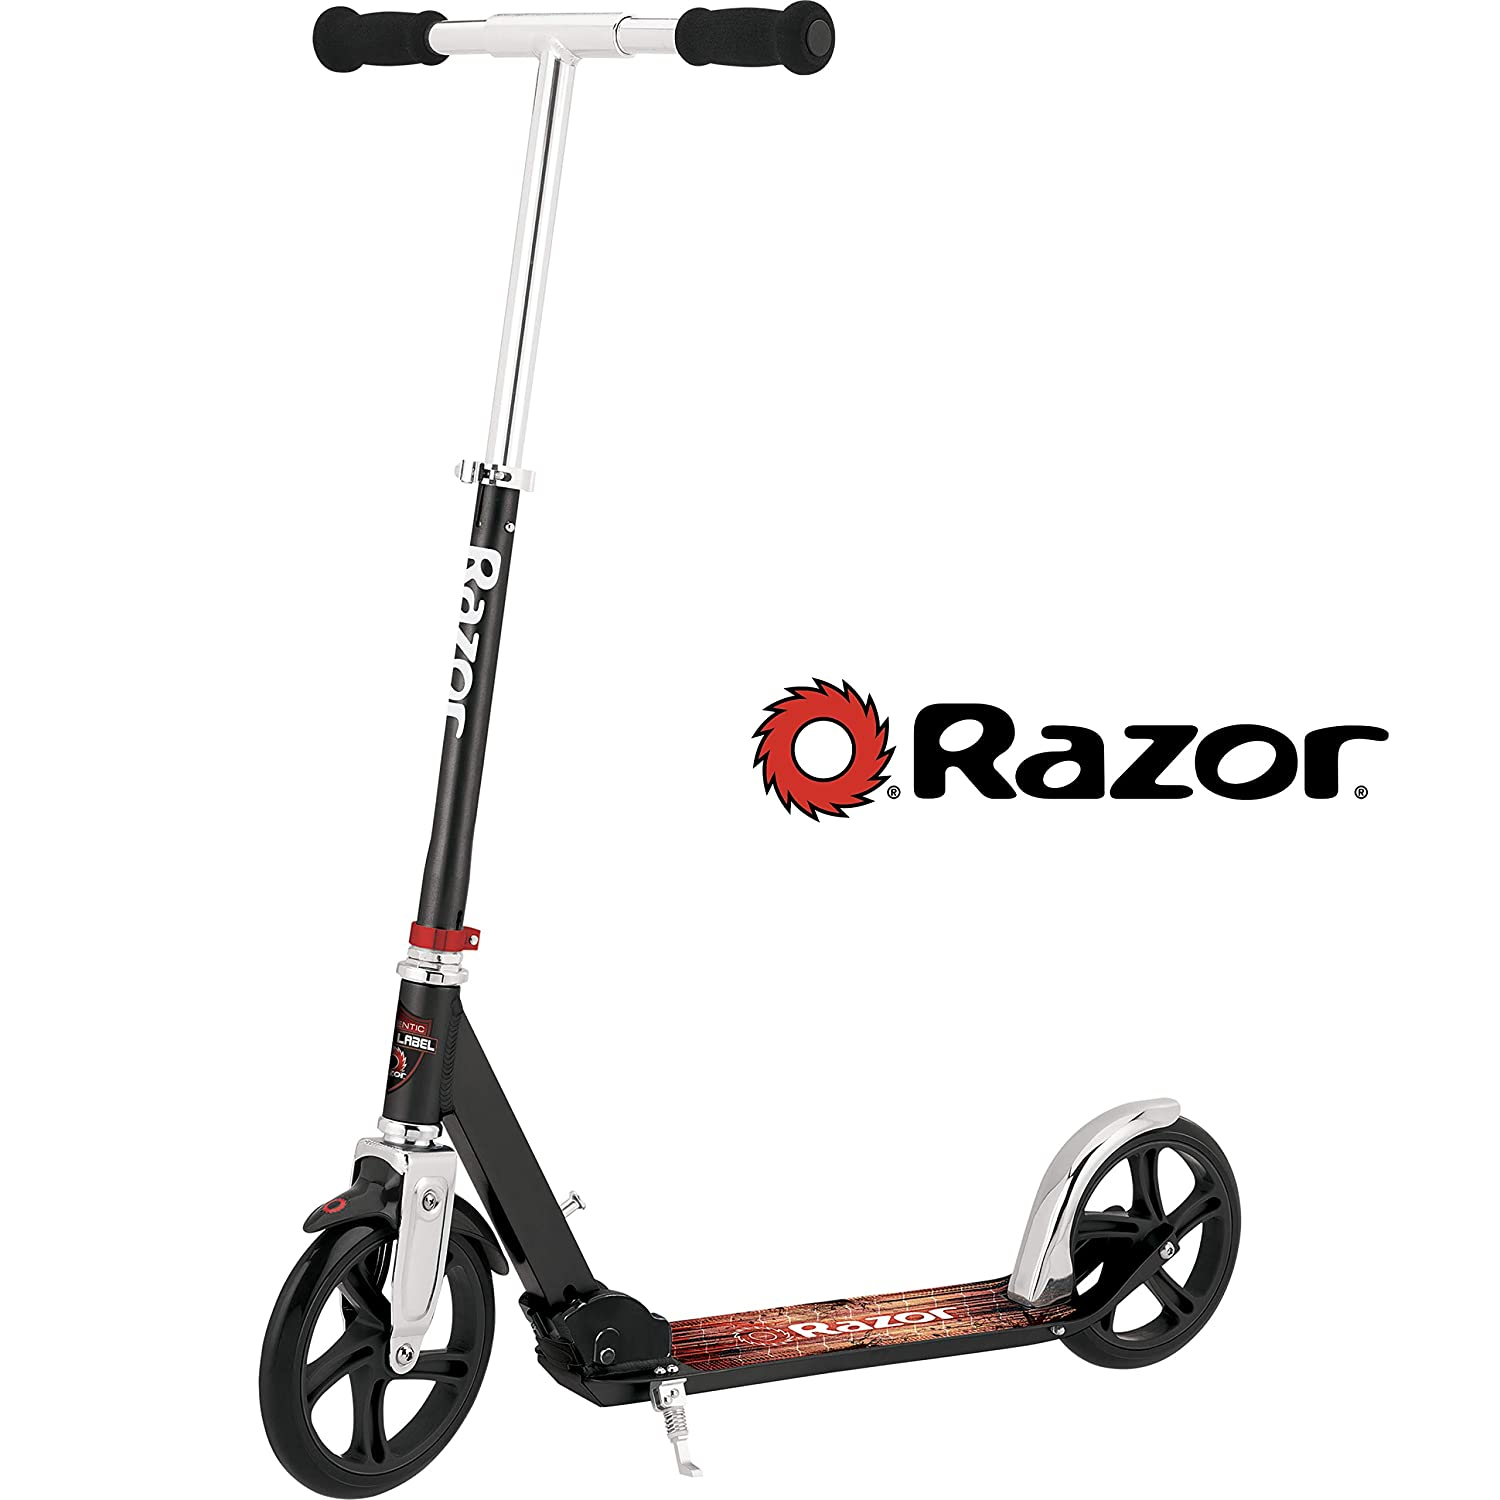 Image result for Razor A5 Lux Scooter: